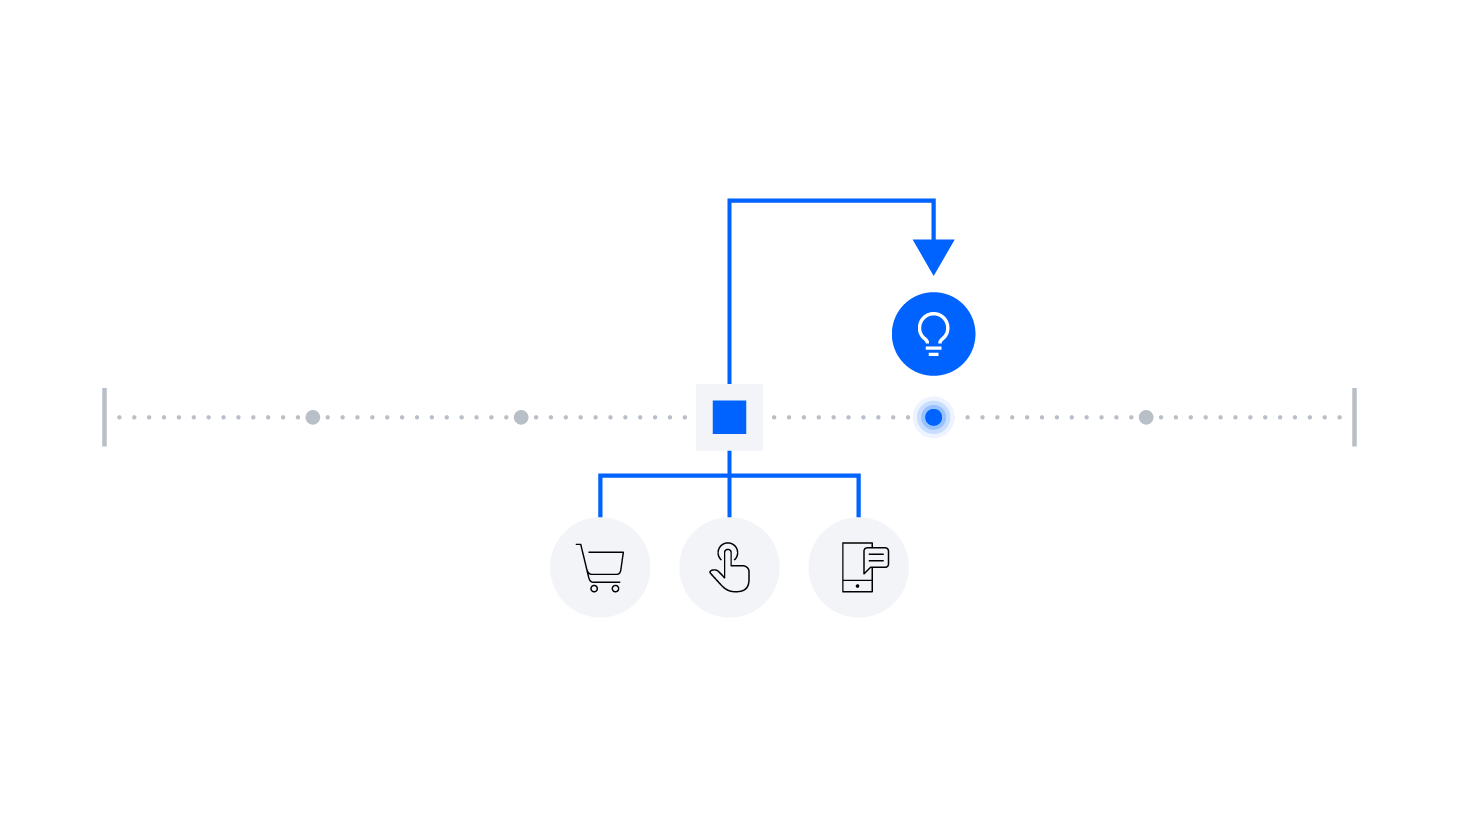 Diagram representing real-time data streams via IBM Event Streams